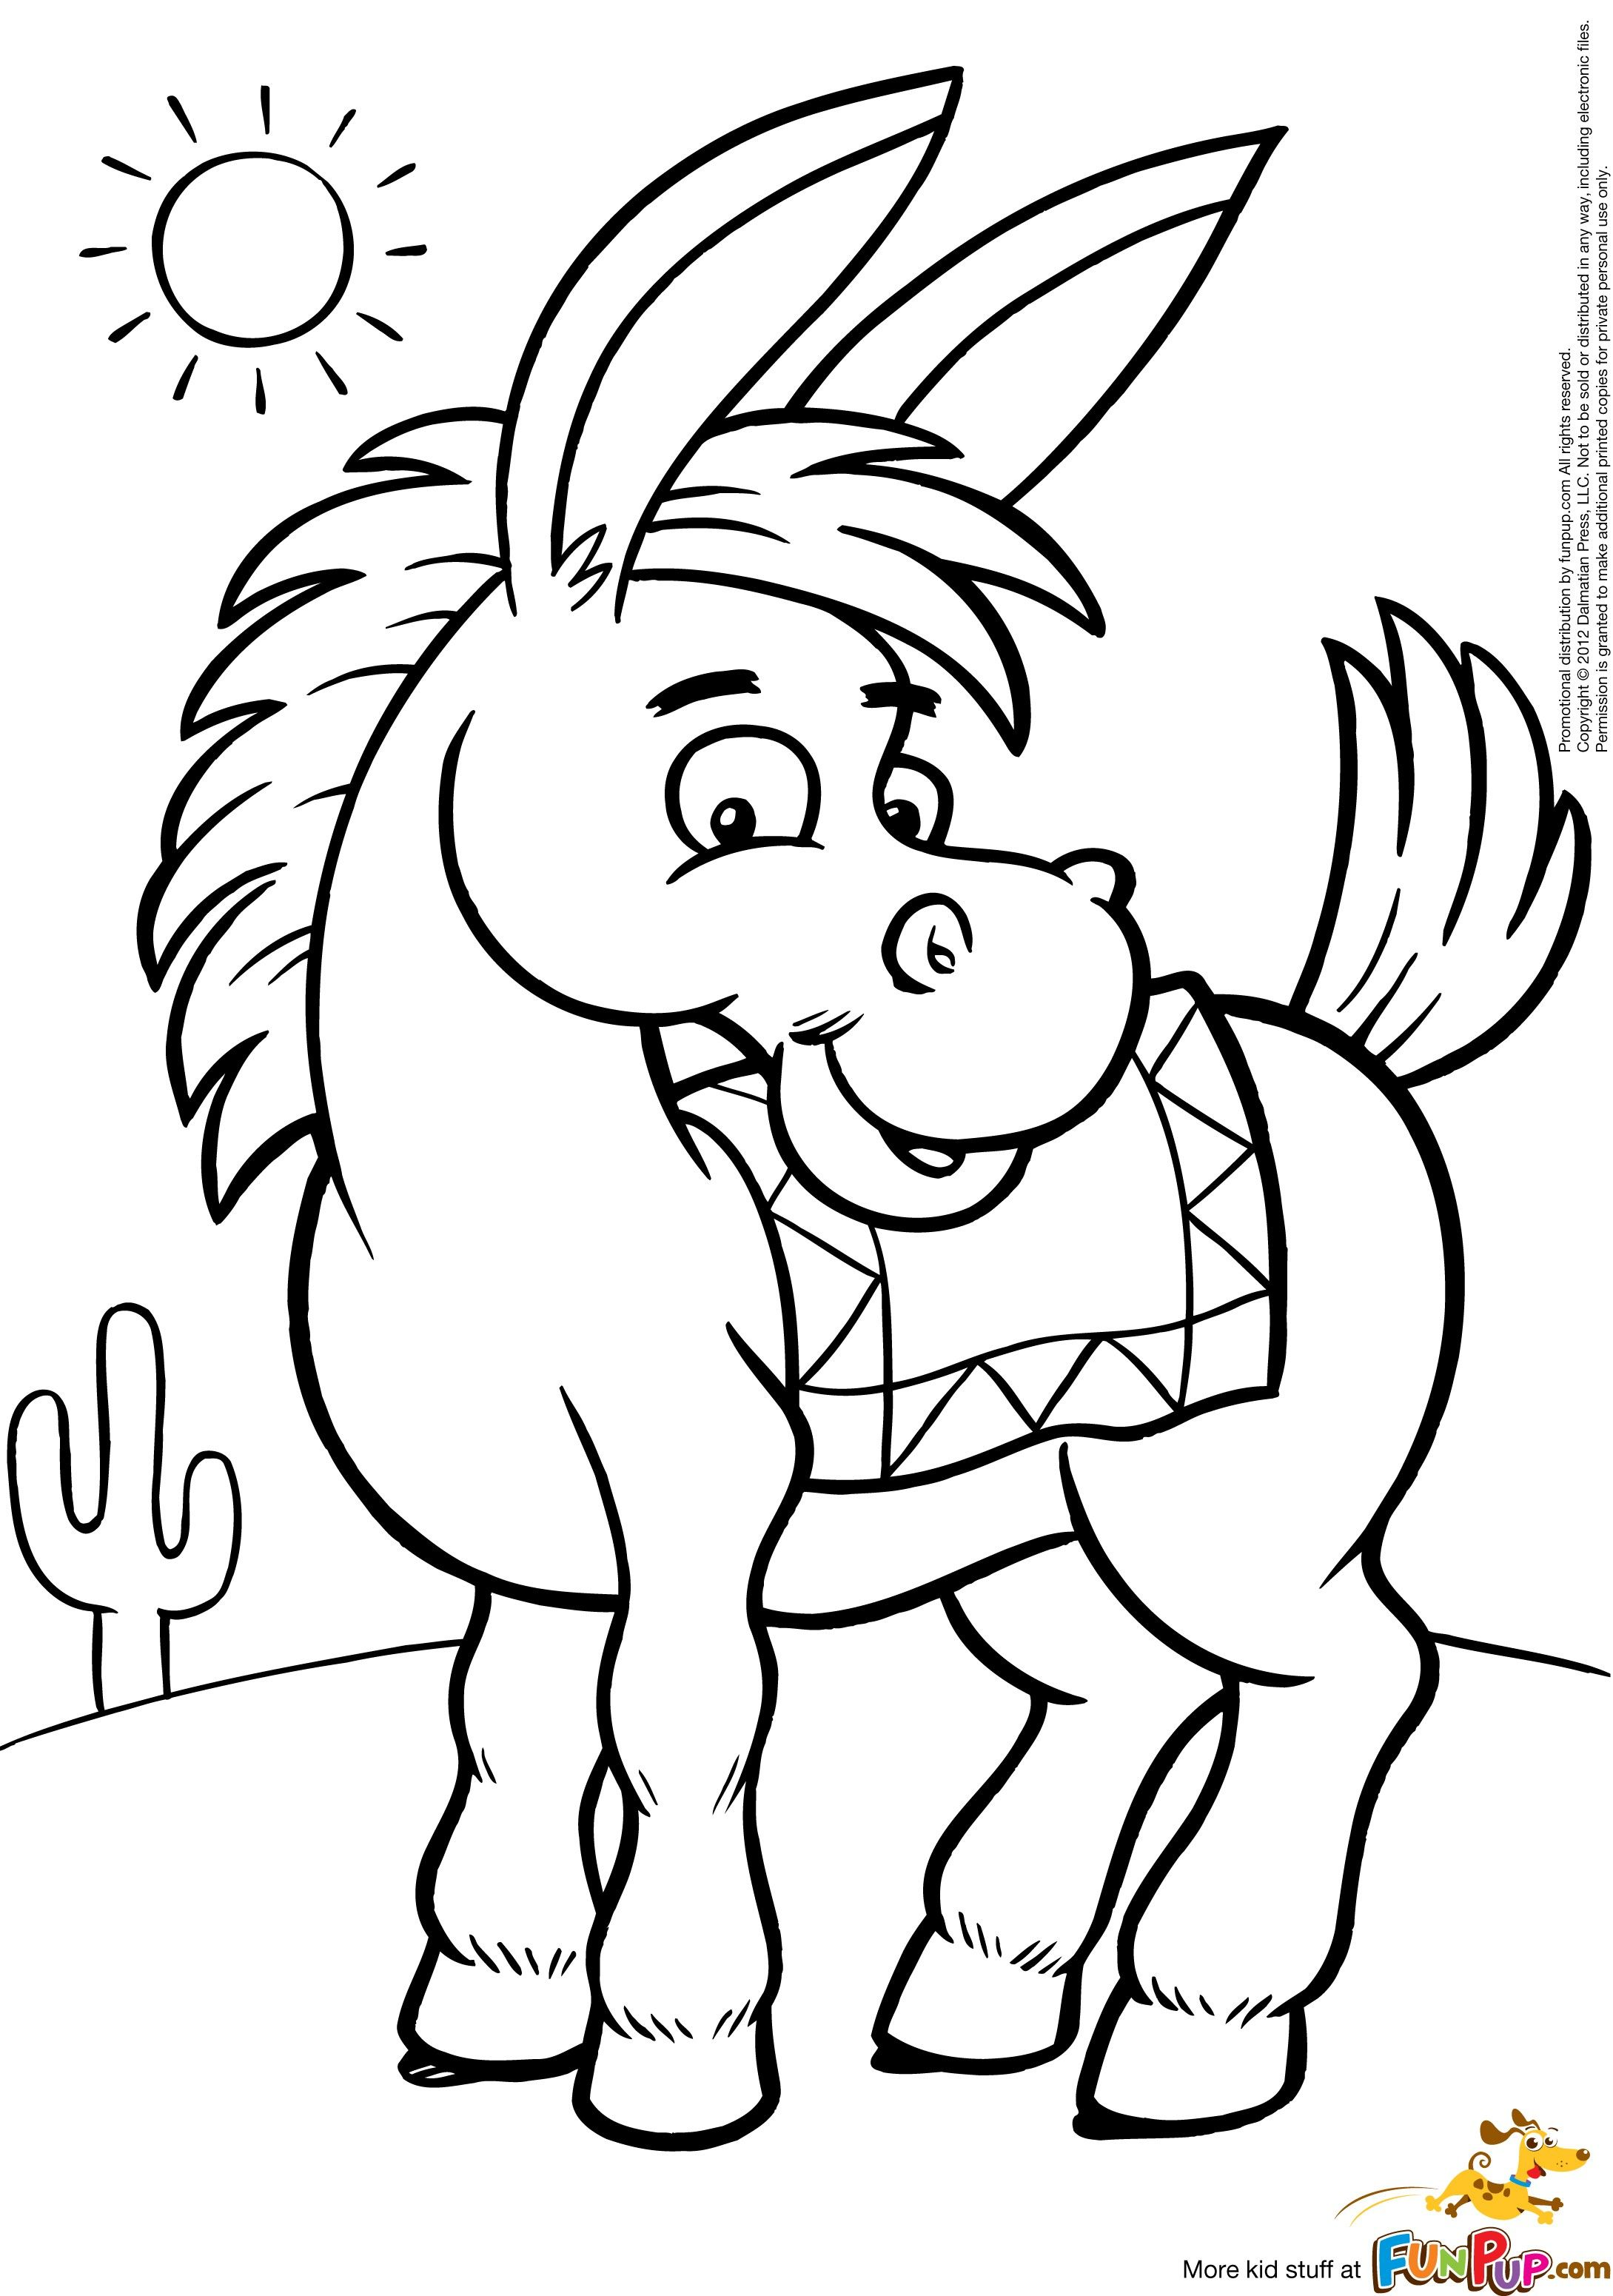 donkey coloring pages Donkey Coloring Pages Printable | Coloring Books | Coloring pages  donkey coloring pages